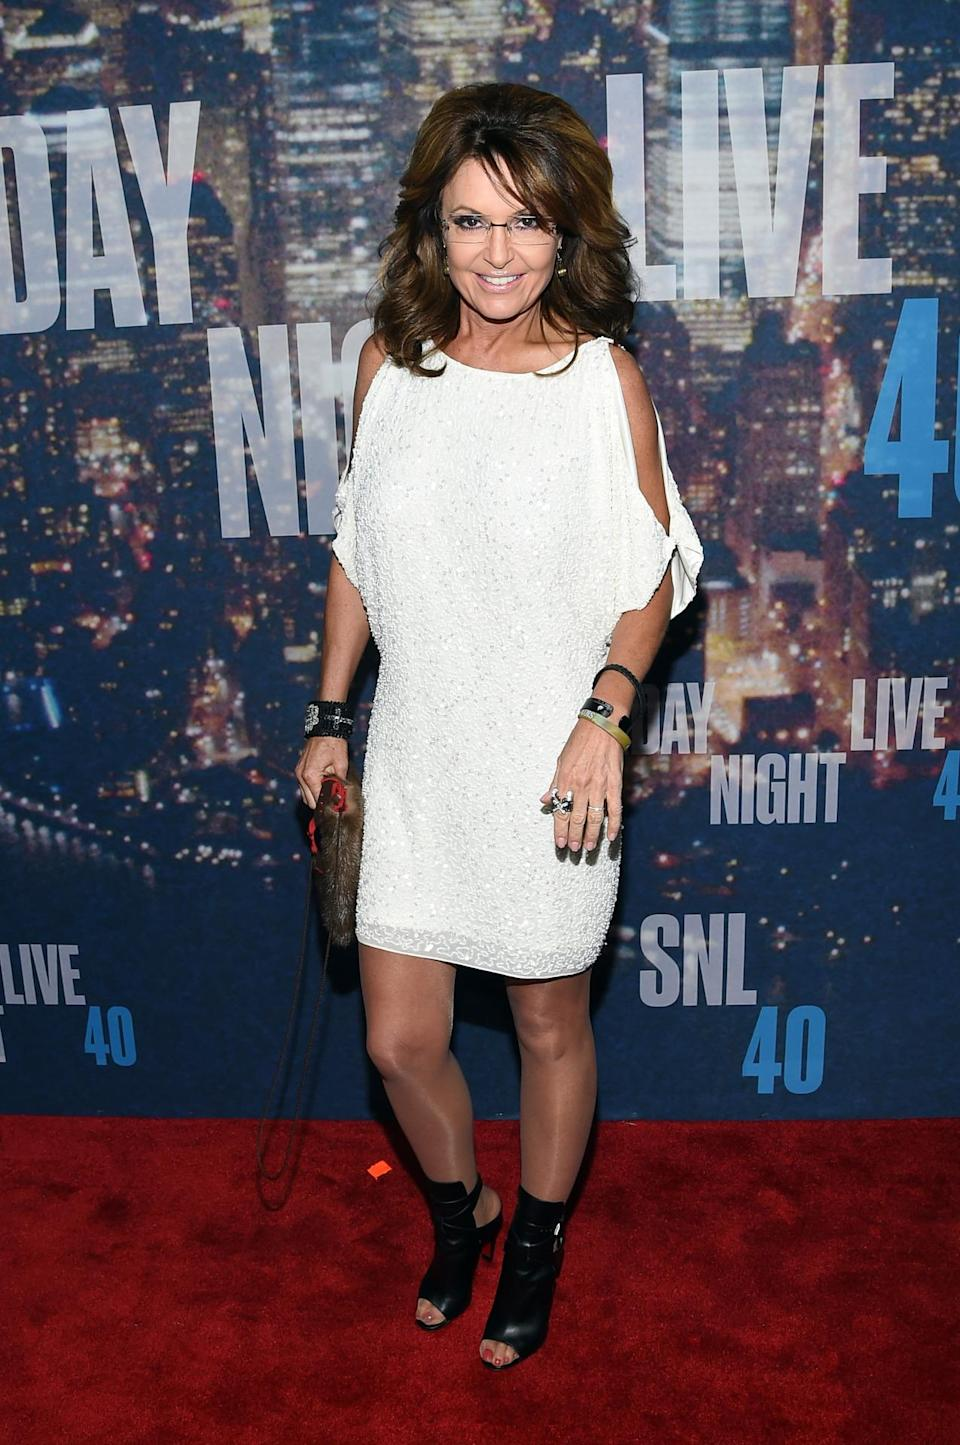 Sarah Palin traded her politician power suits and Alaskan snowsuits for a short white dress and open-toed booties.